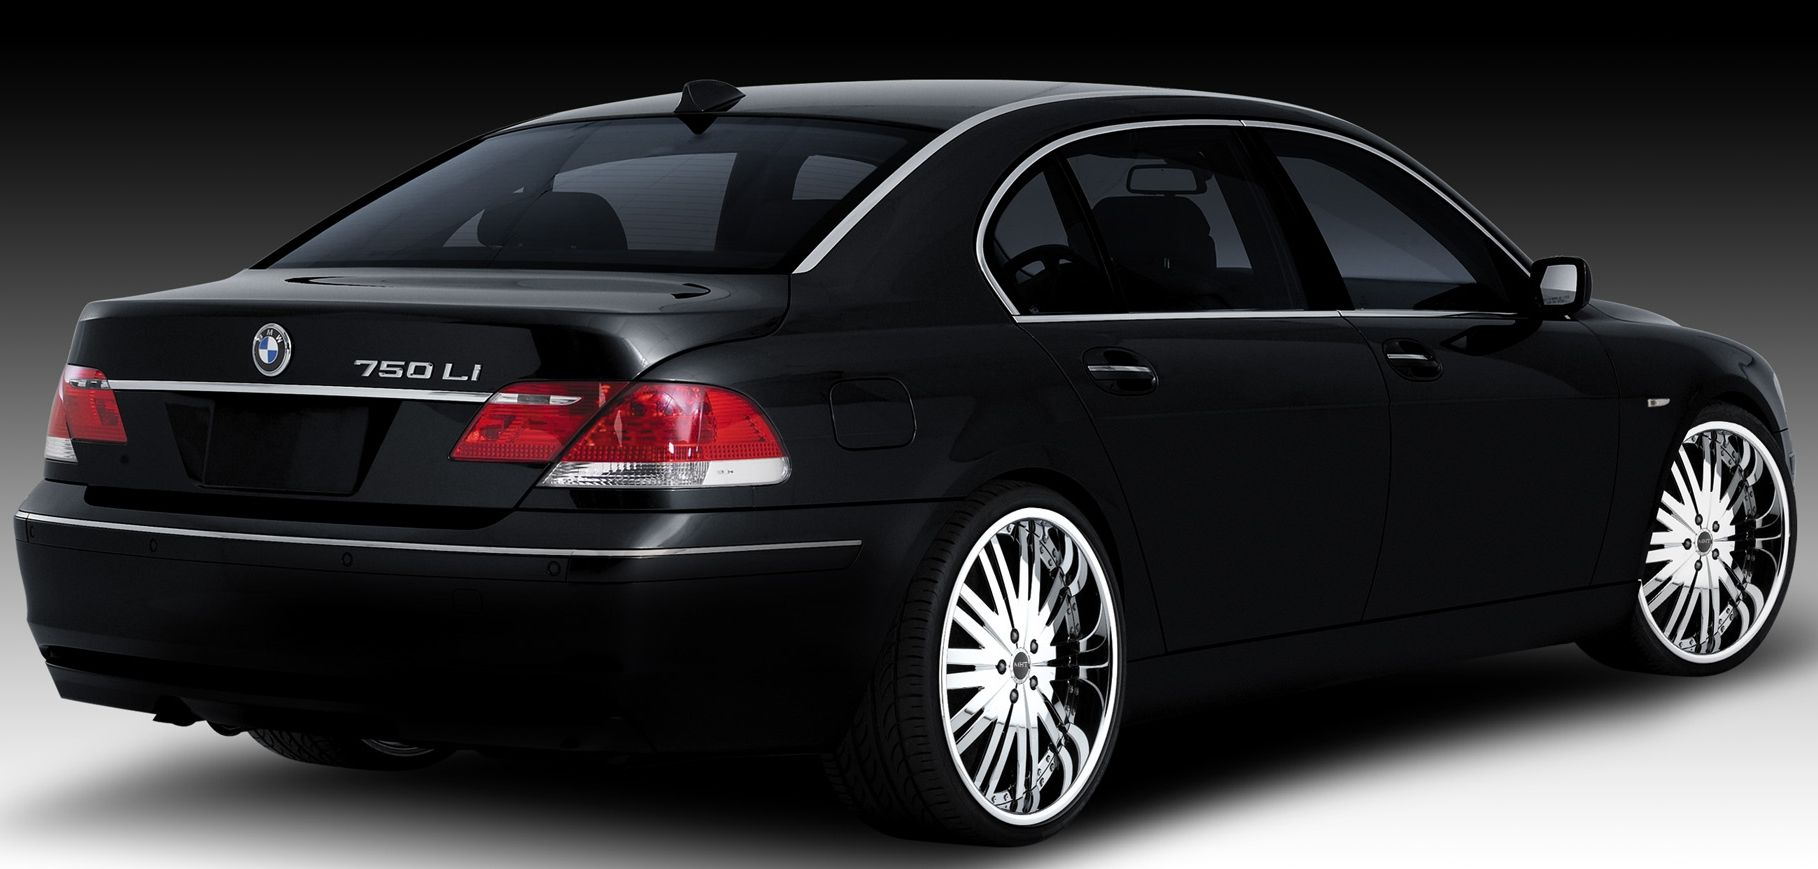 New Bmw 7 Series Private Fleet